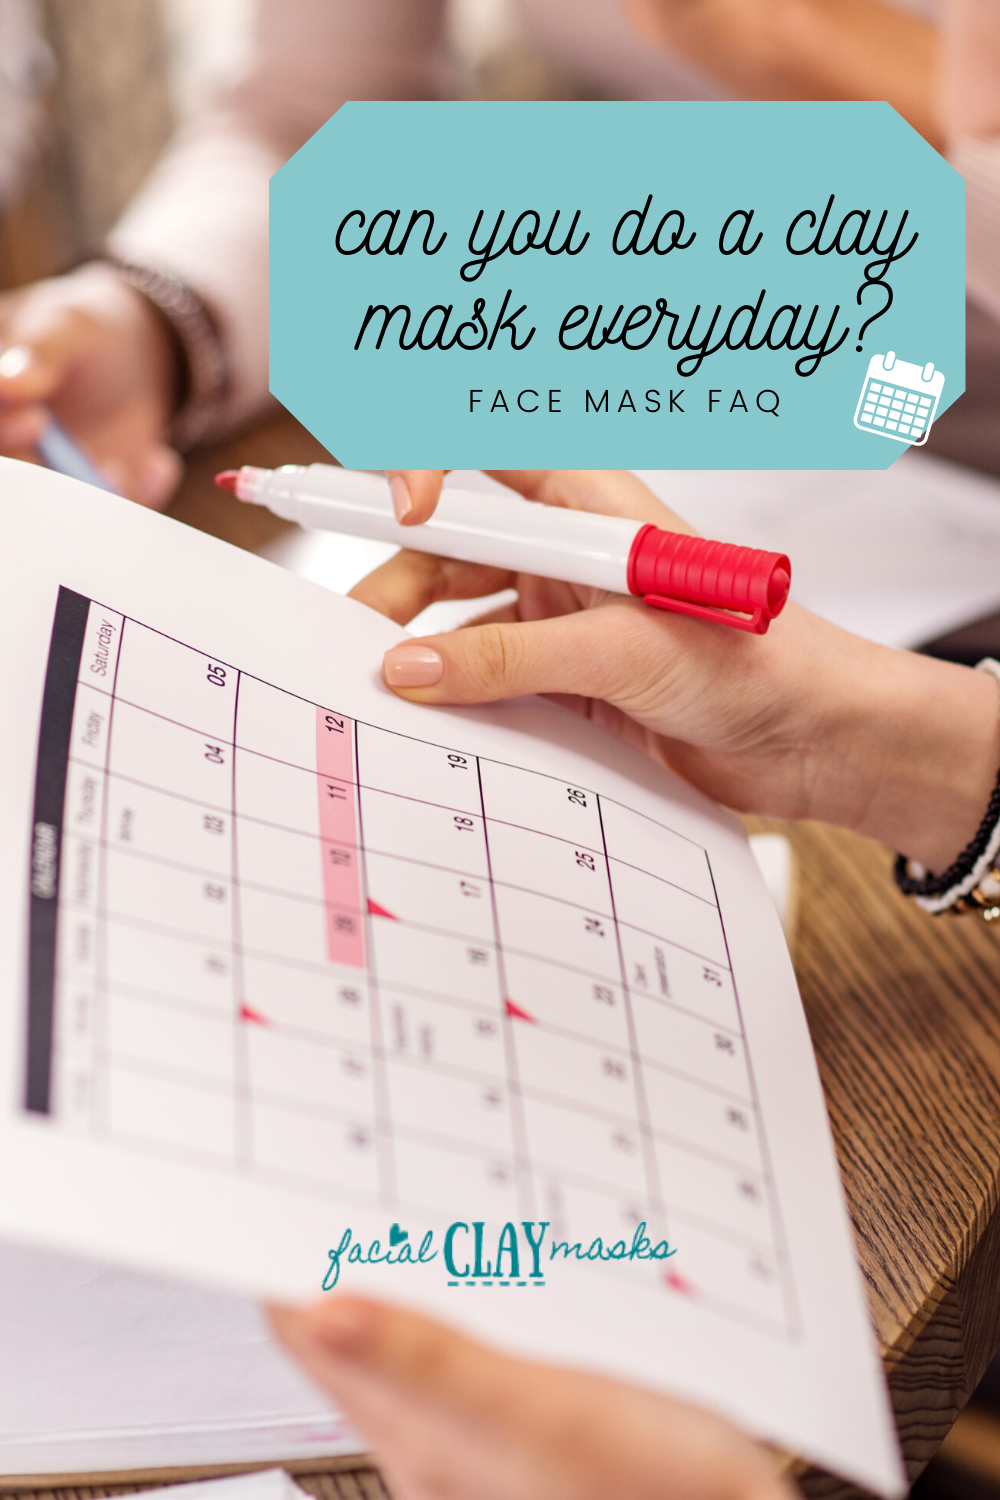 Can you use a clay mask everyday? 1